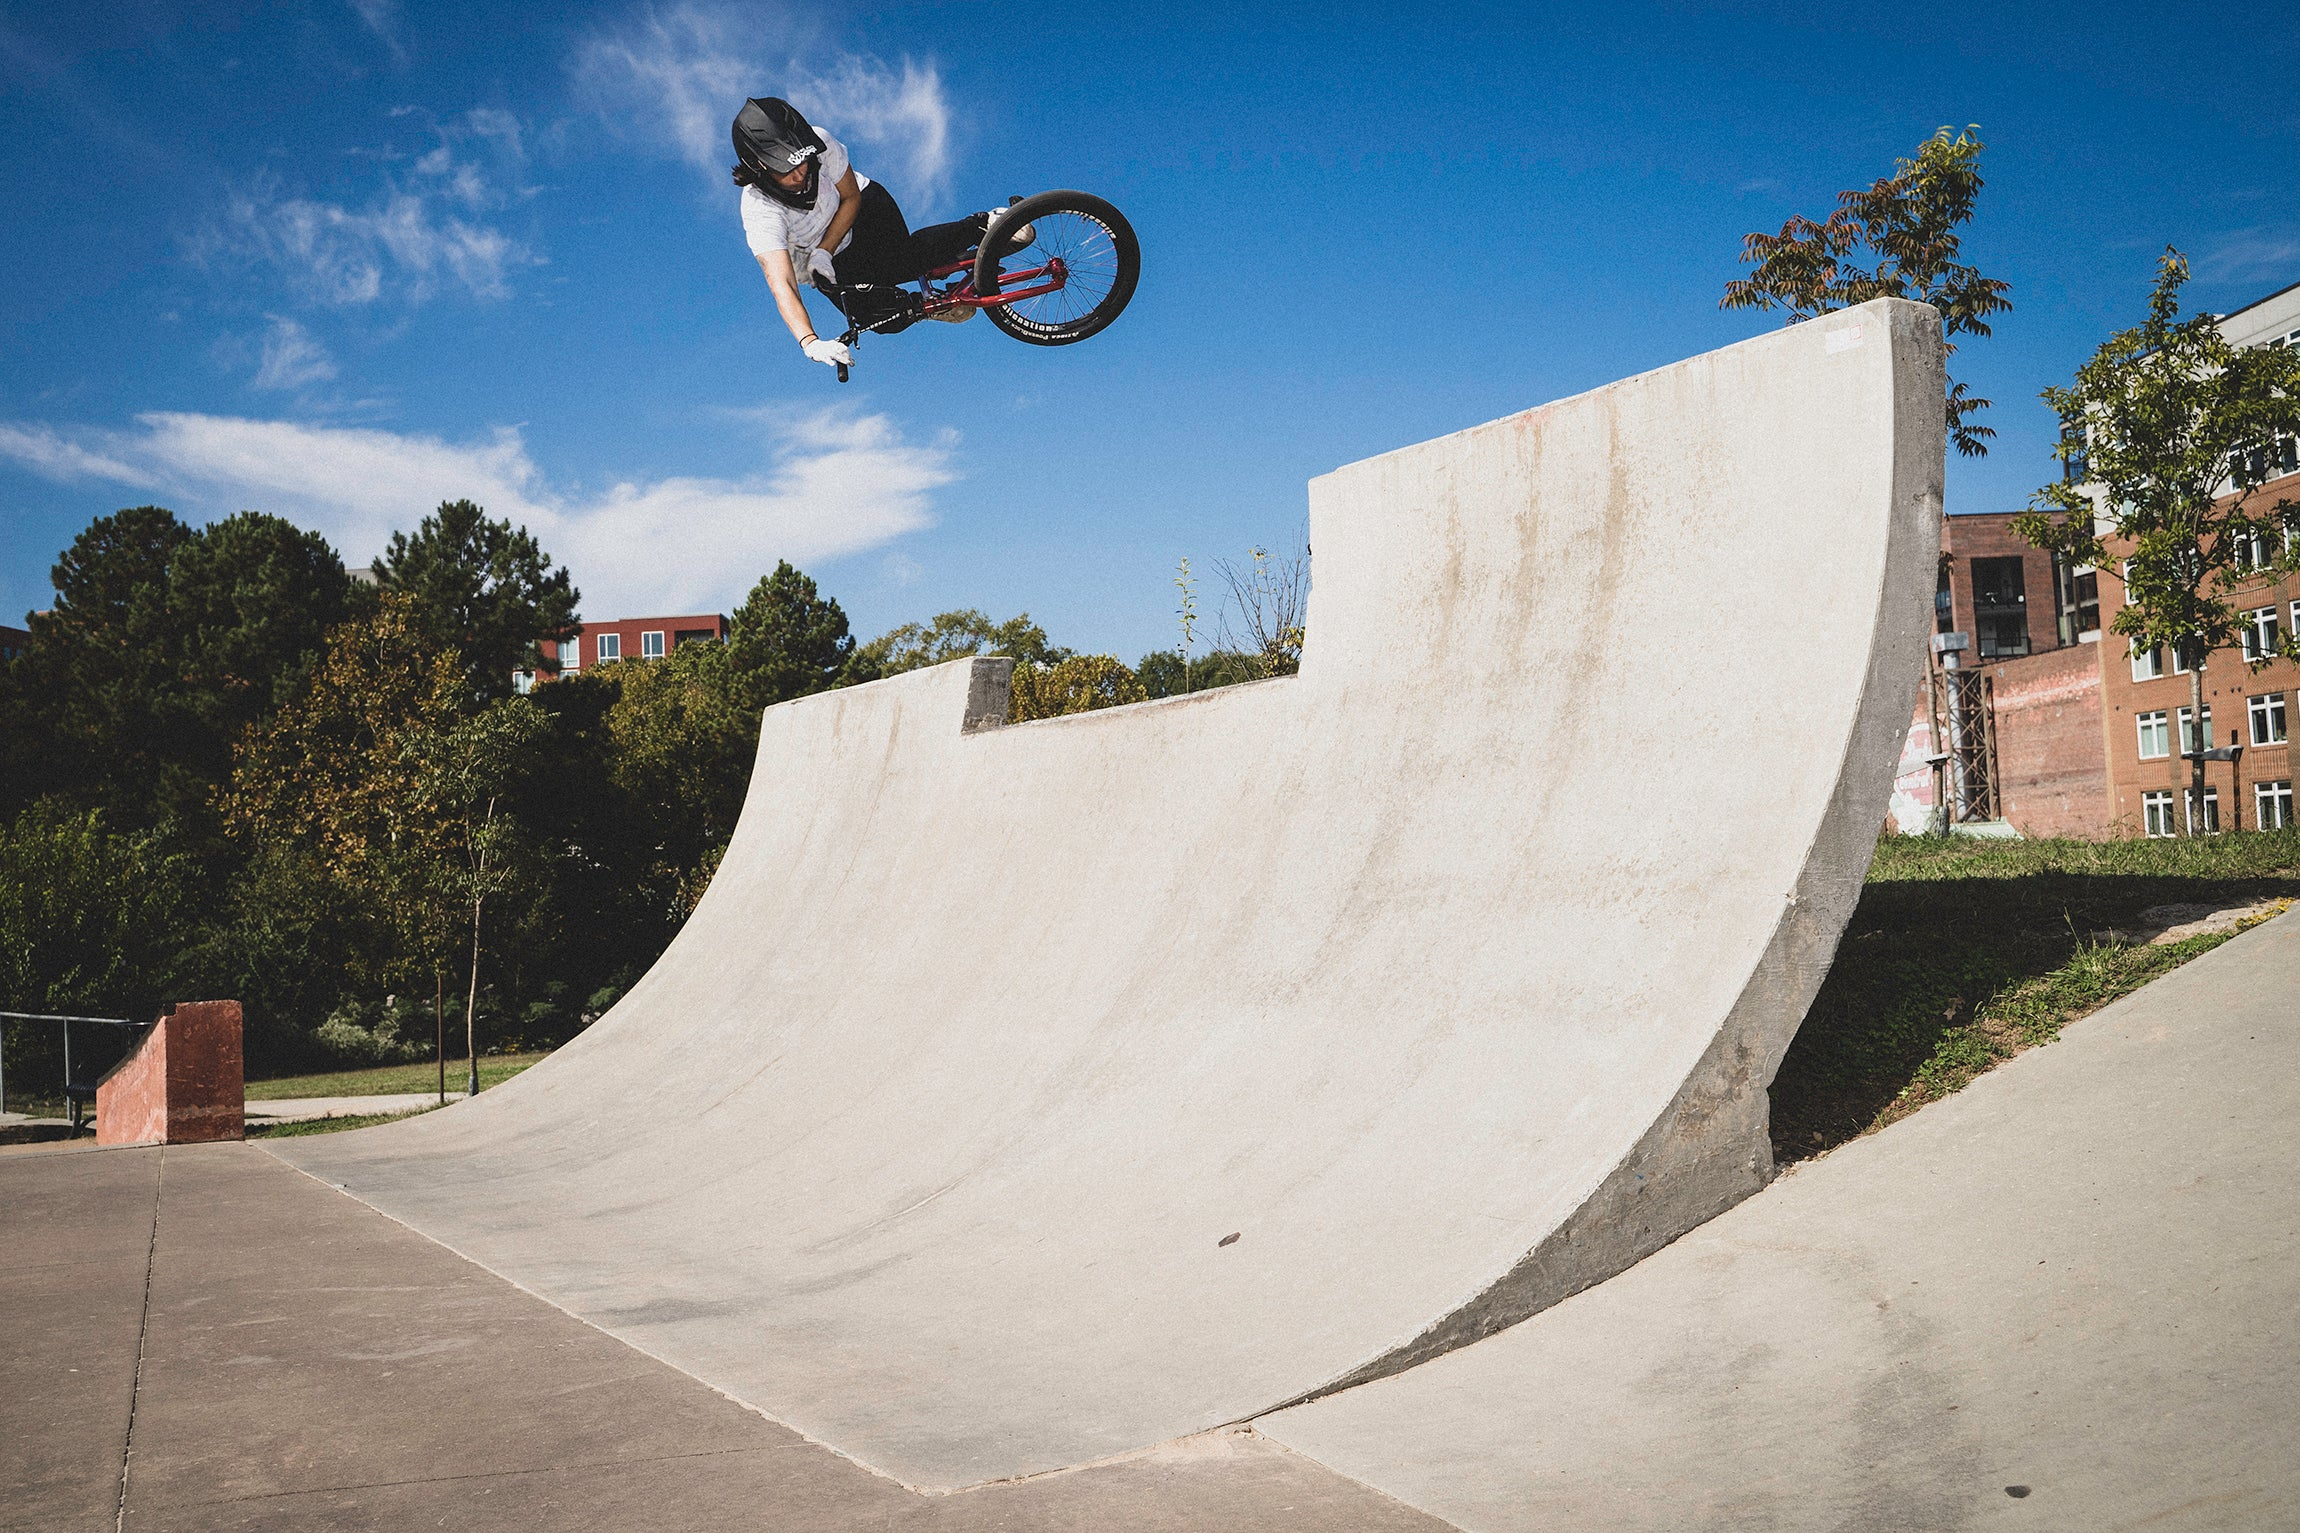 Vital BMX Spot for Spot with Team Mongoose